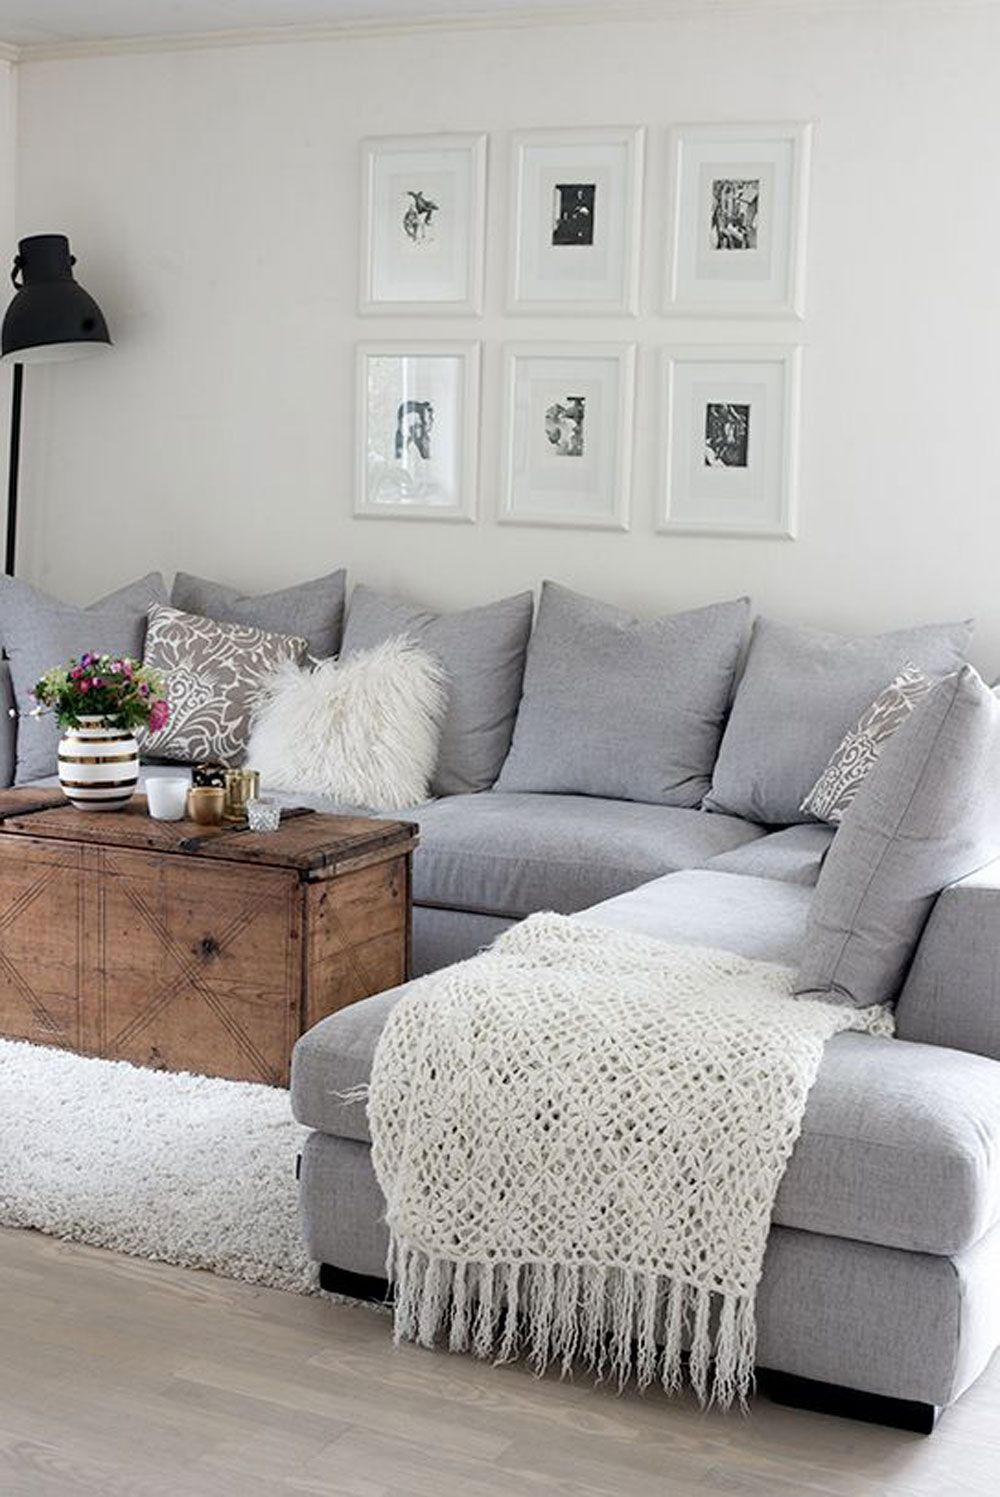 grey couch decor grey couch decor ideas grey couch decor living rh pinterest com Grey Leather Furniture Dog Furniture Grey Sofas